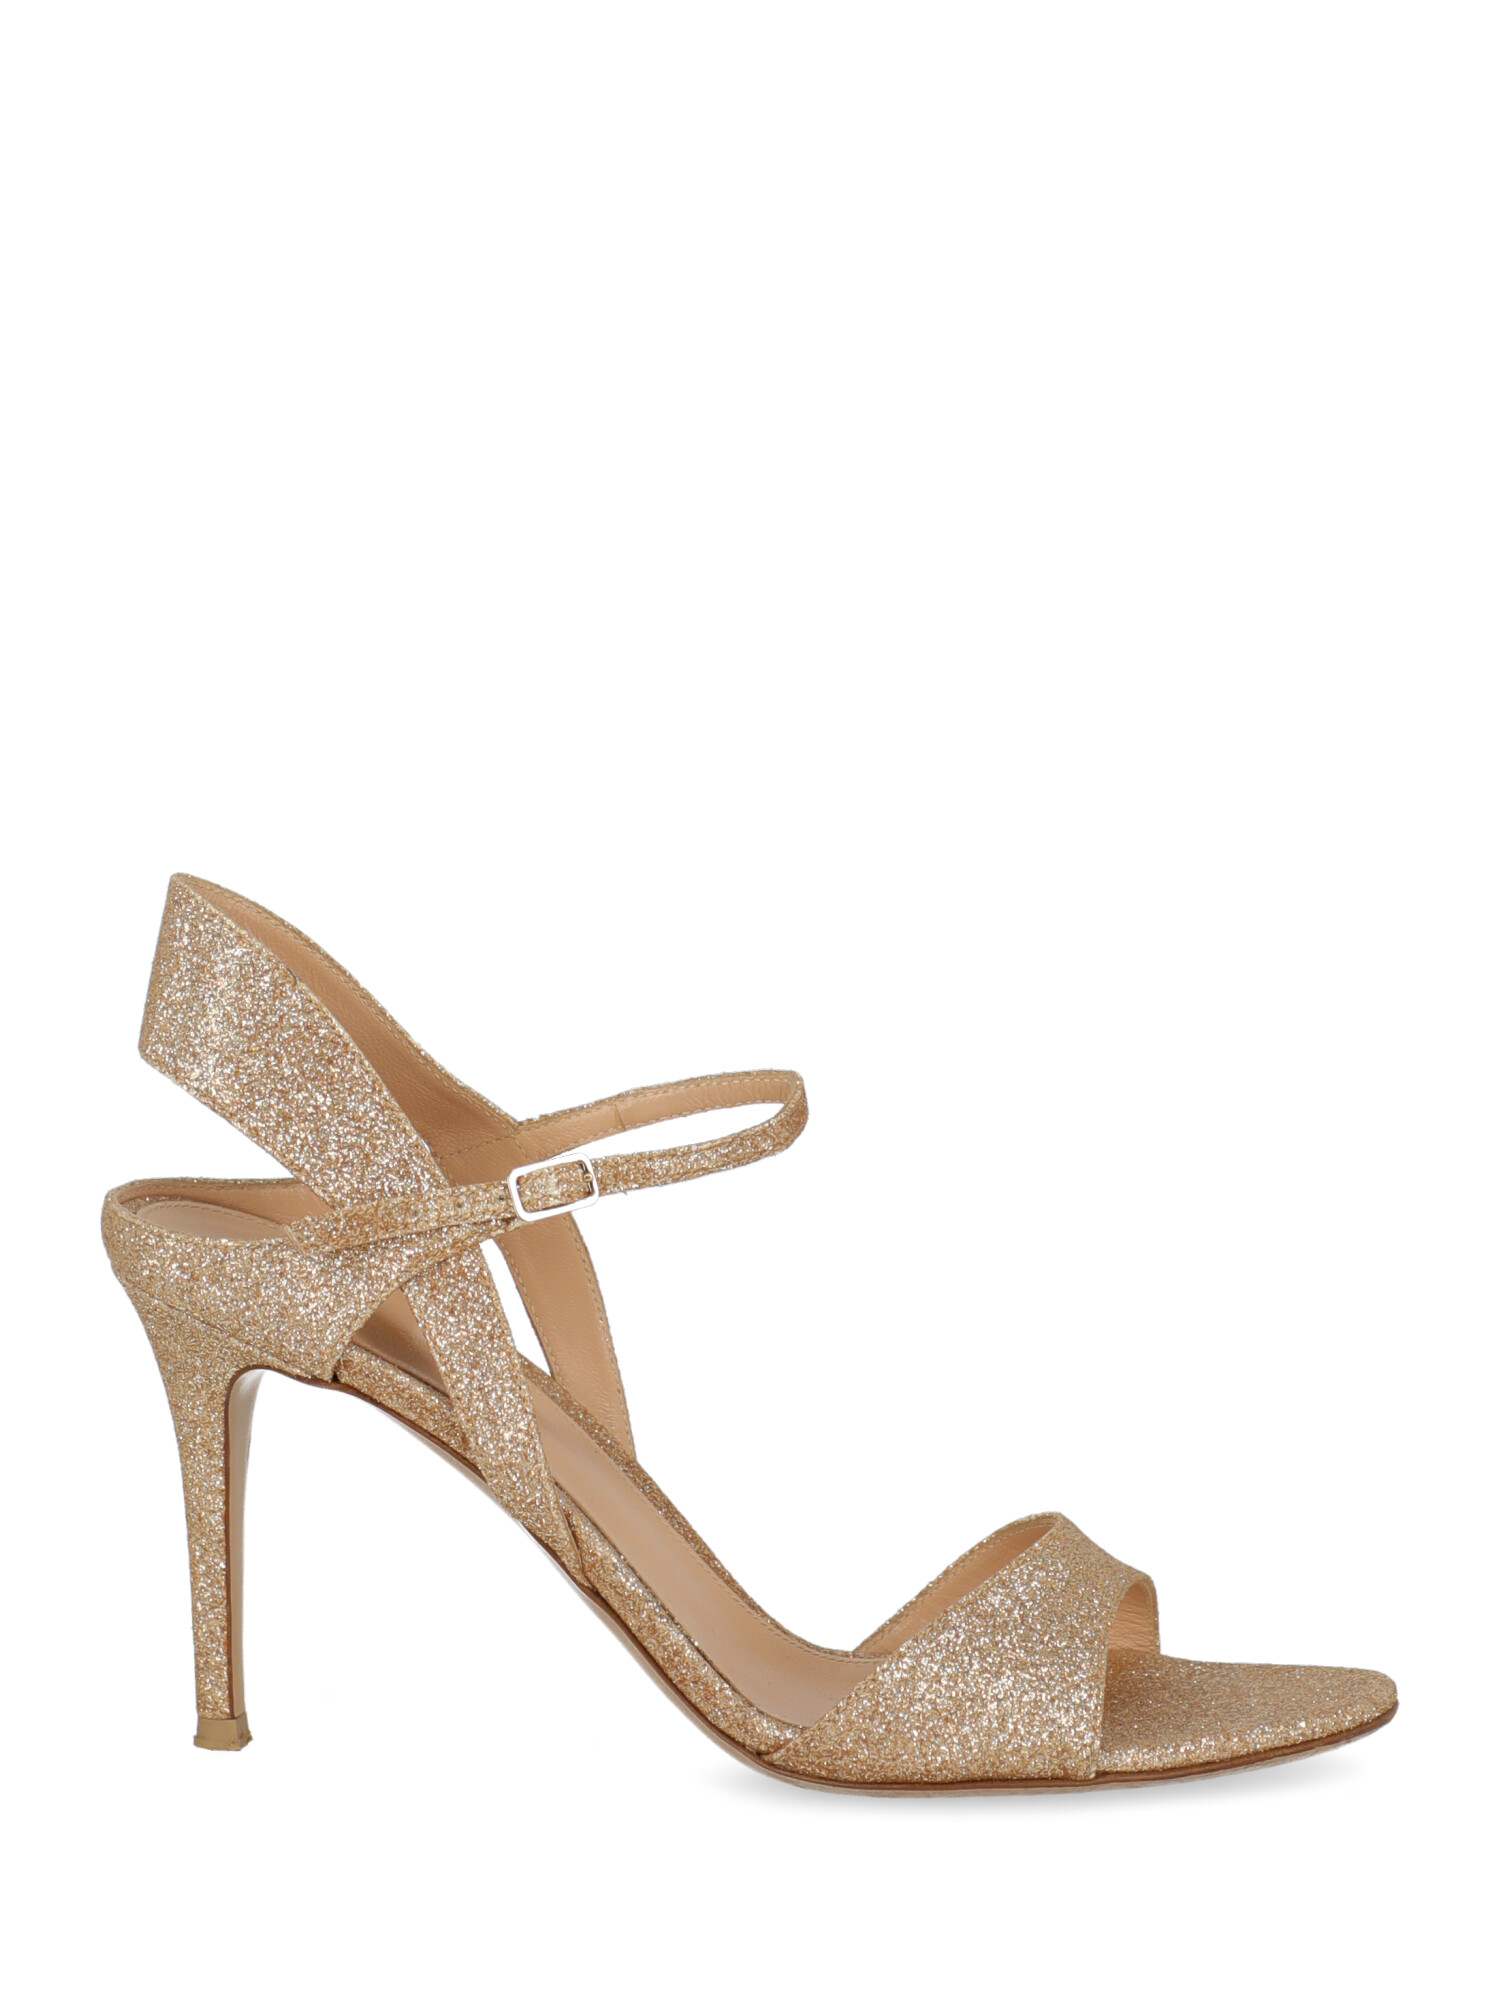 Pre-owned Gianvito Rossi Woman In Gold